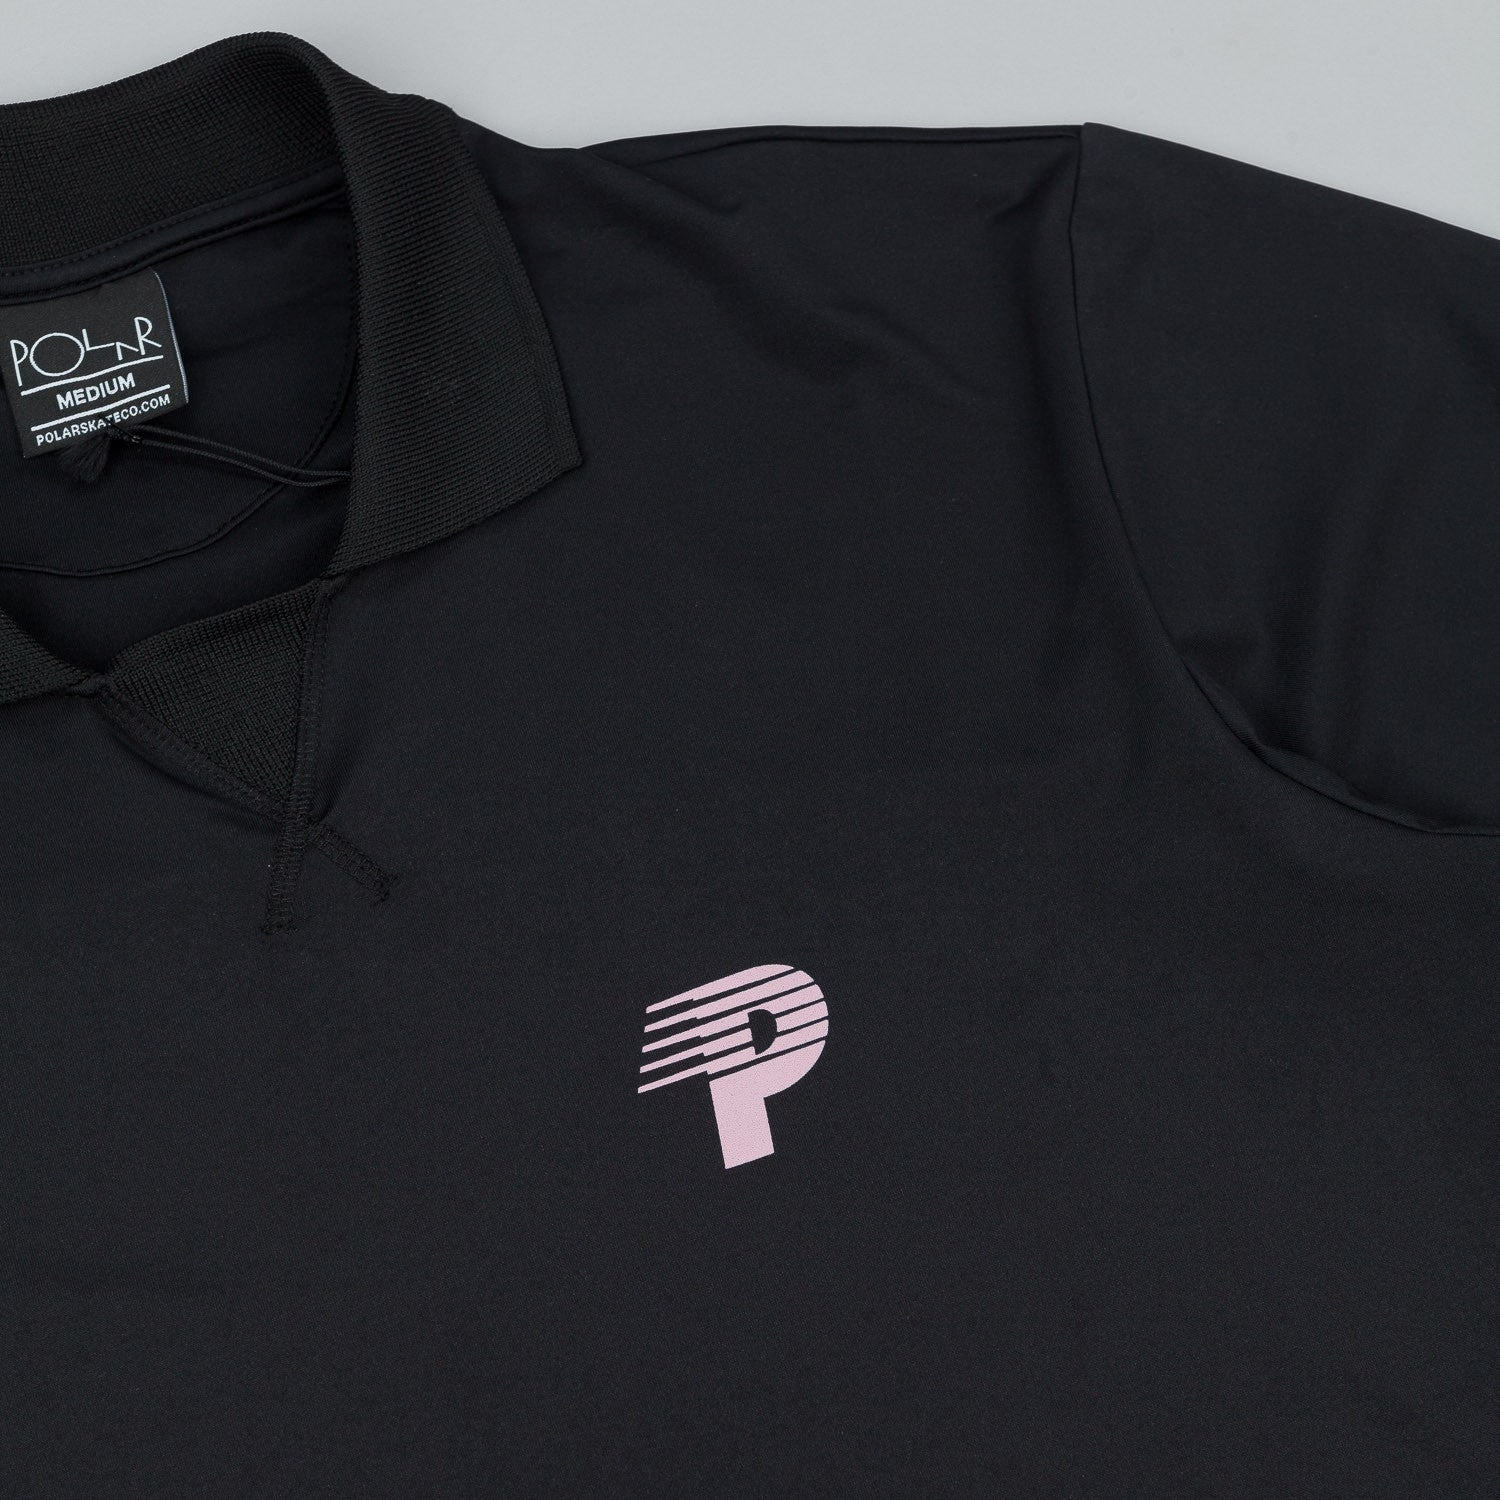 Polar Speedy P Short Sleeve Coach Jersey - Black / Pink